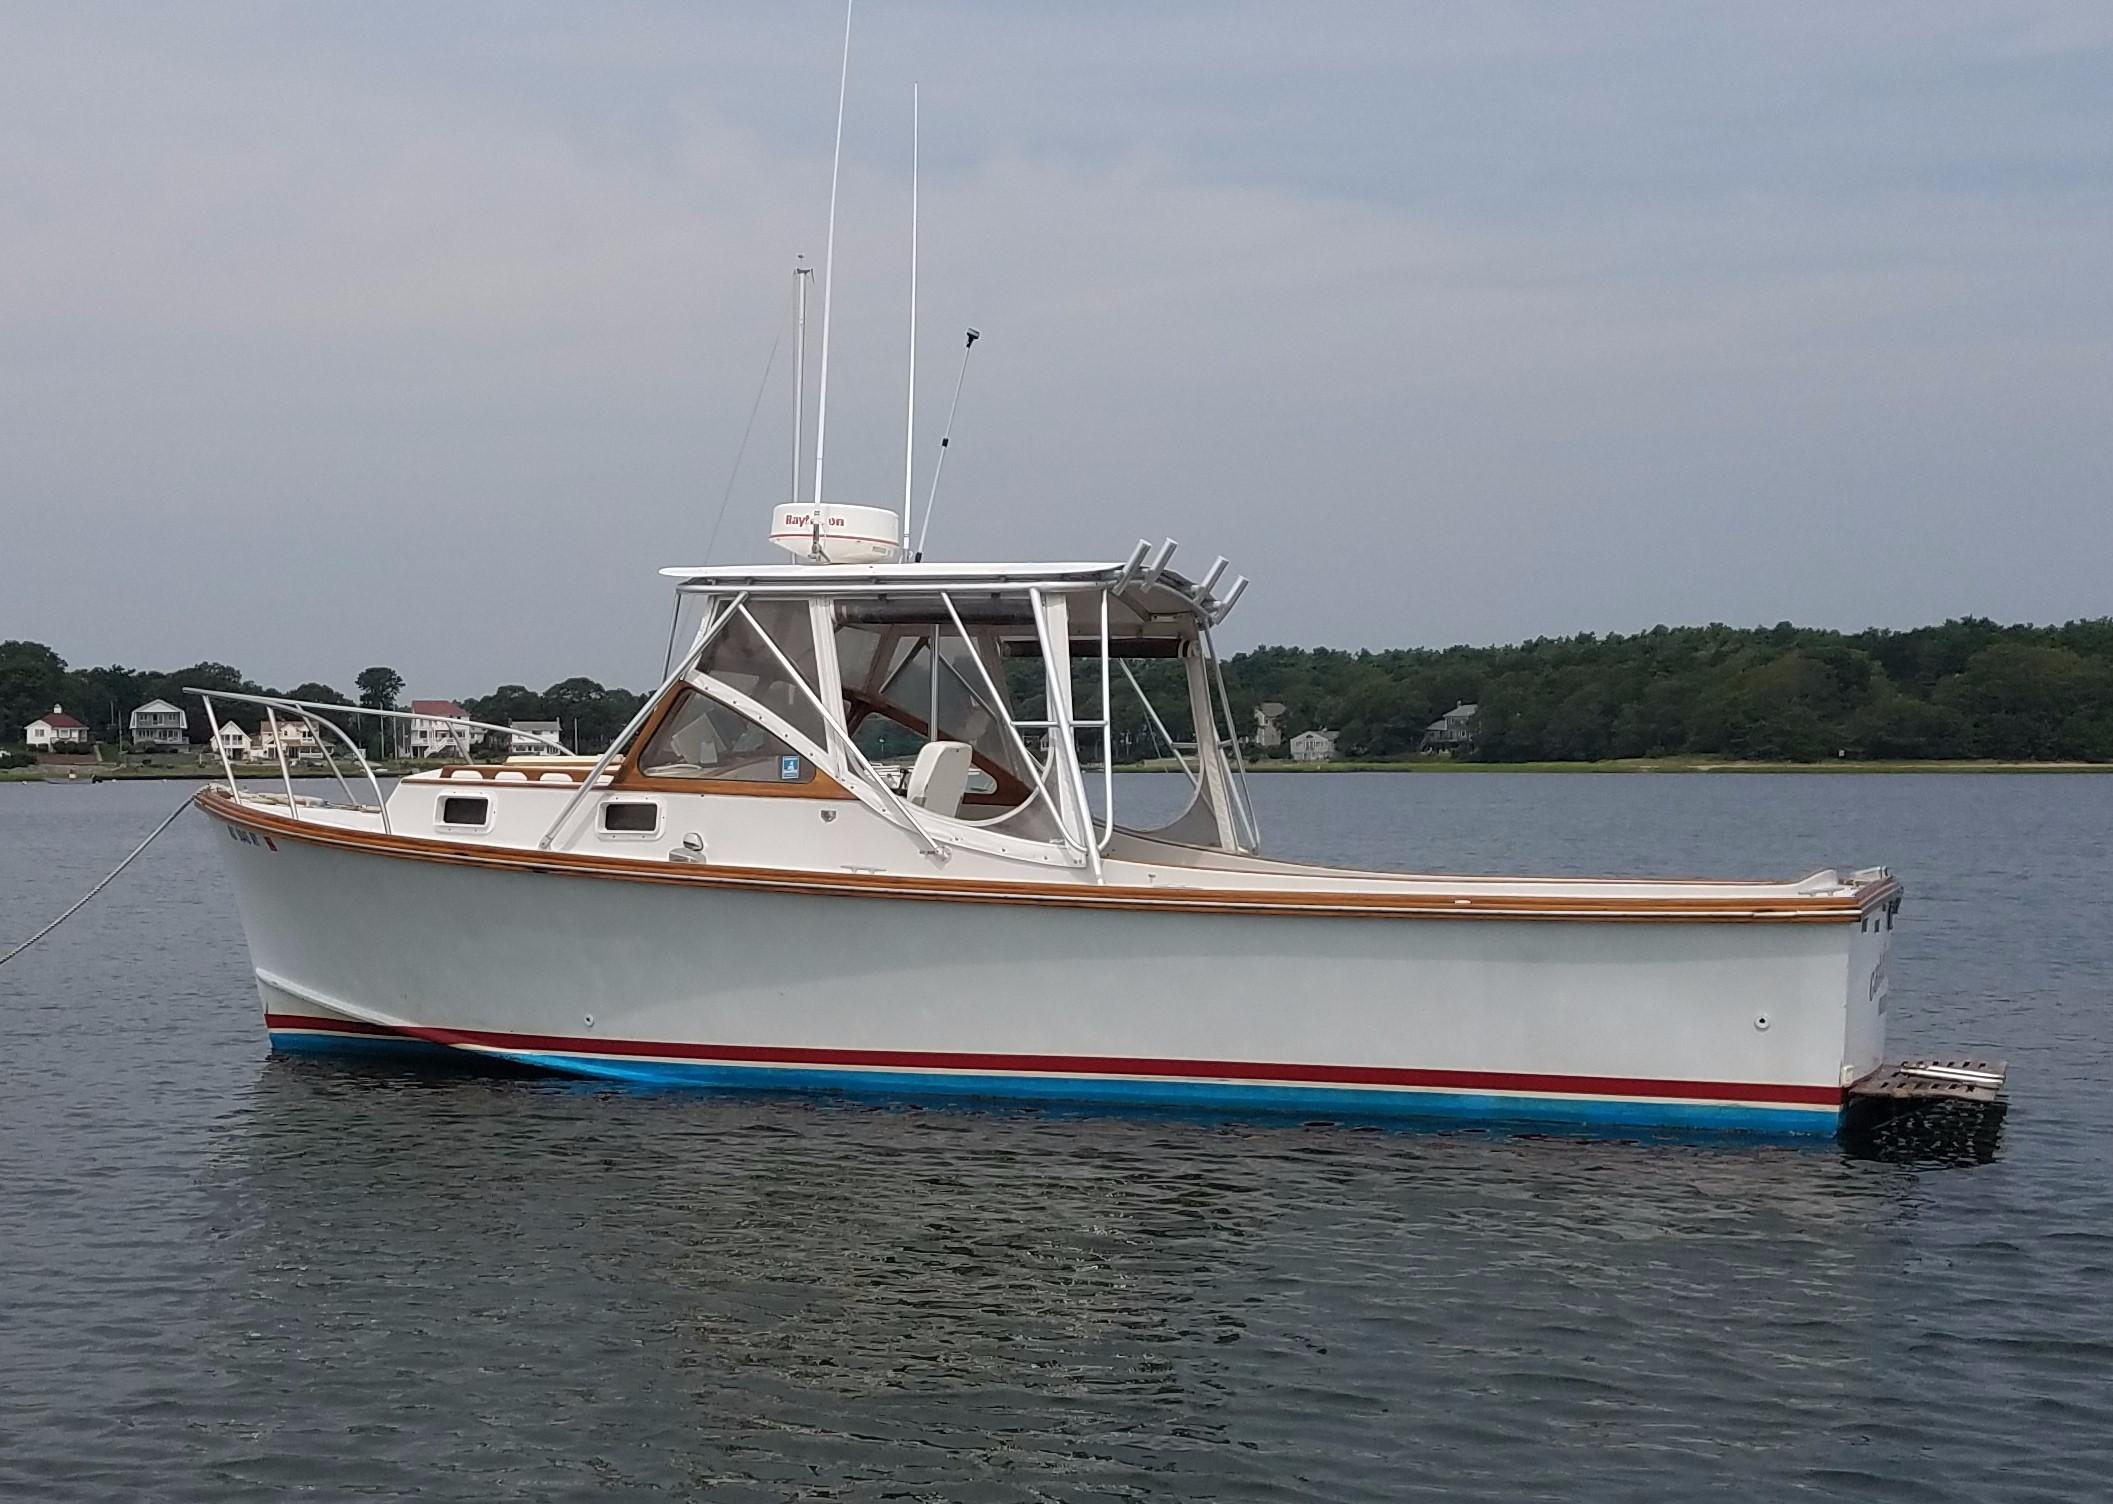 1979 Fortier 26 Hardtop Power Boat For Sale Www